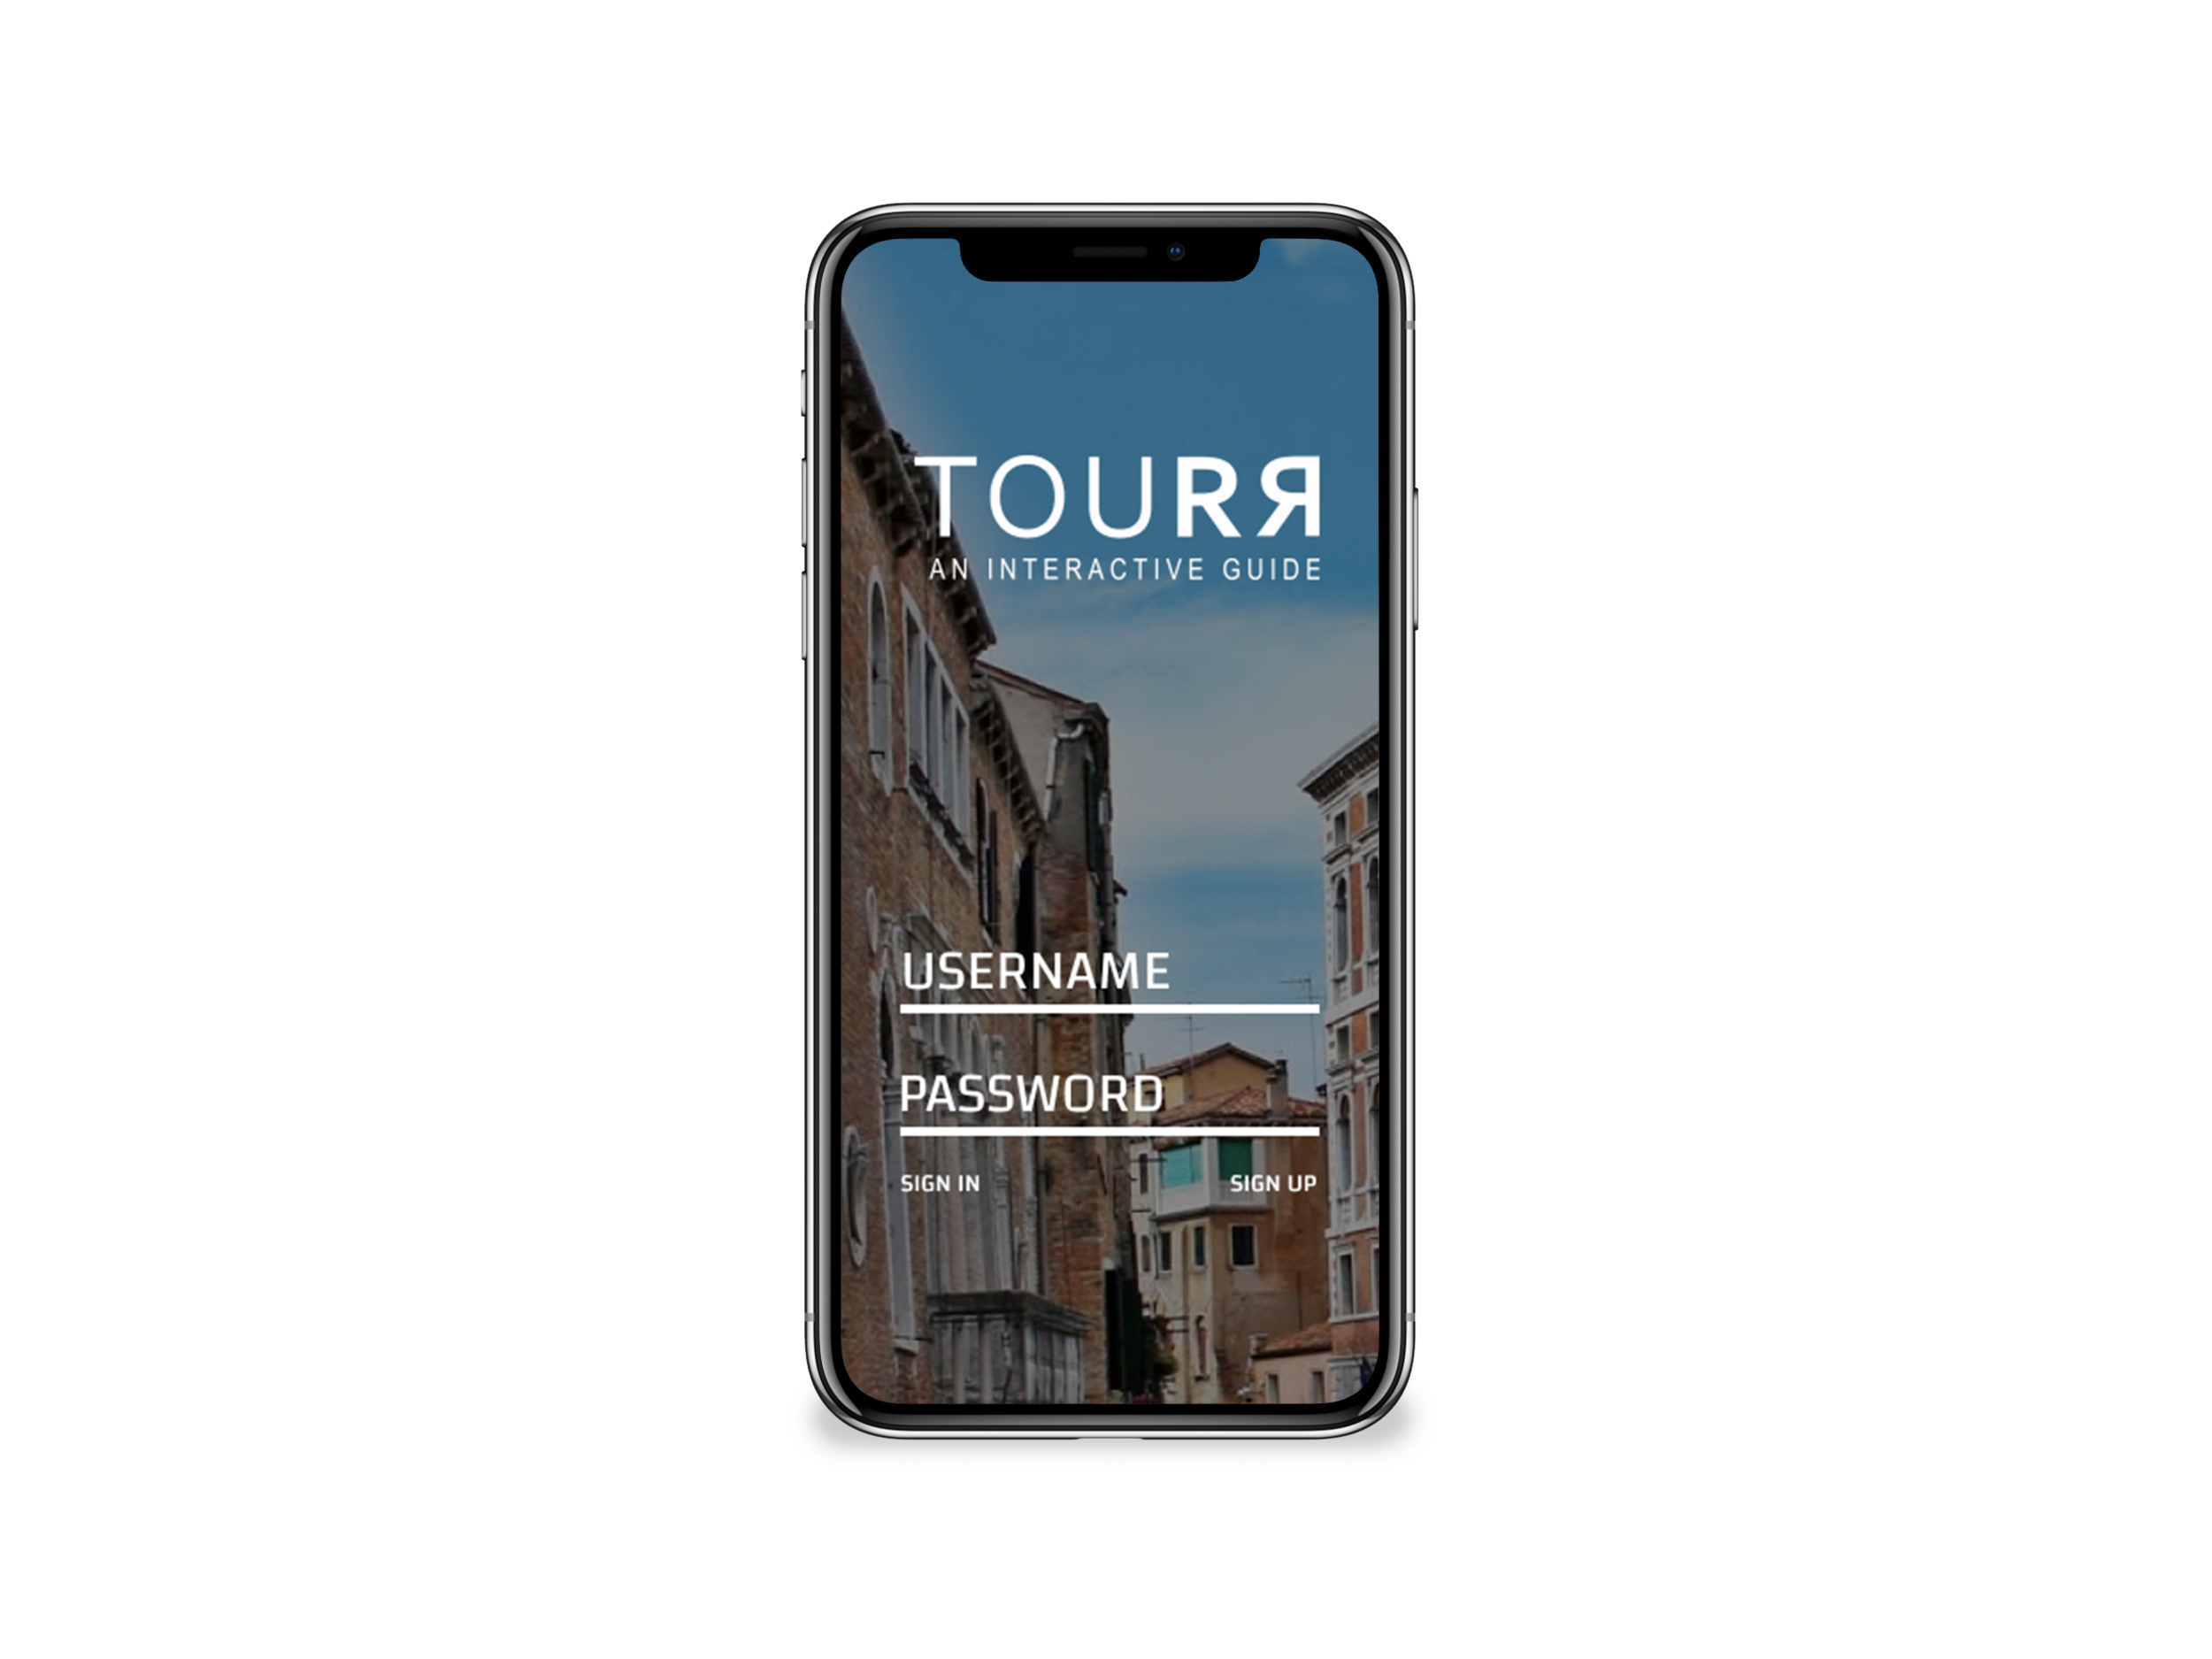 Tour: An Interactive Guide